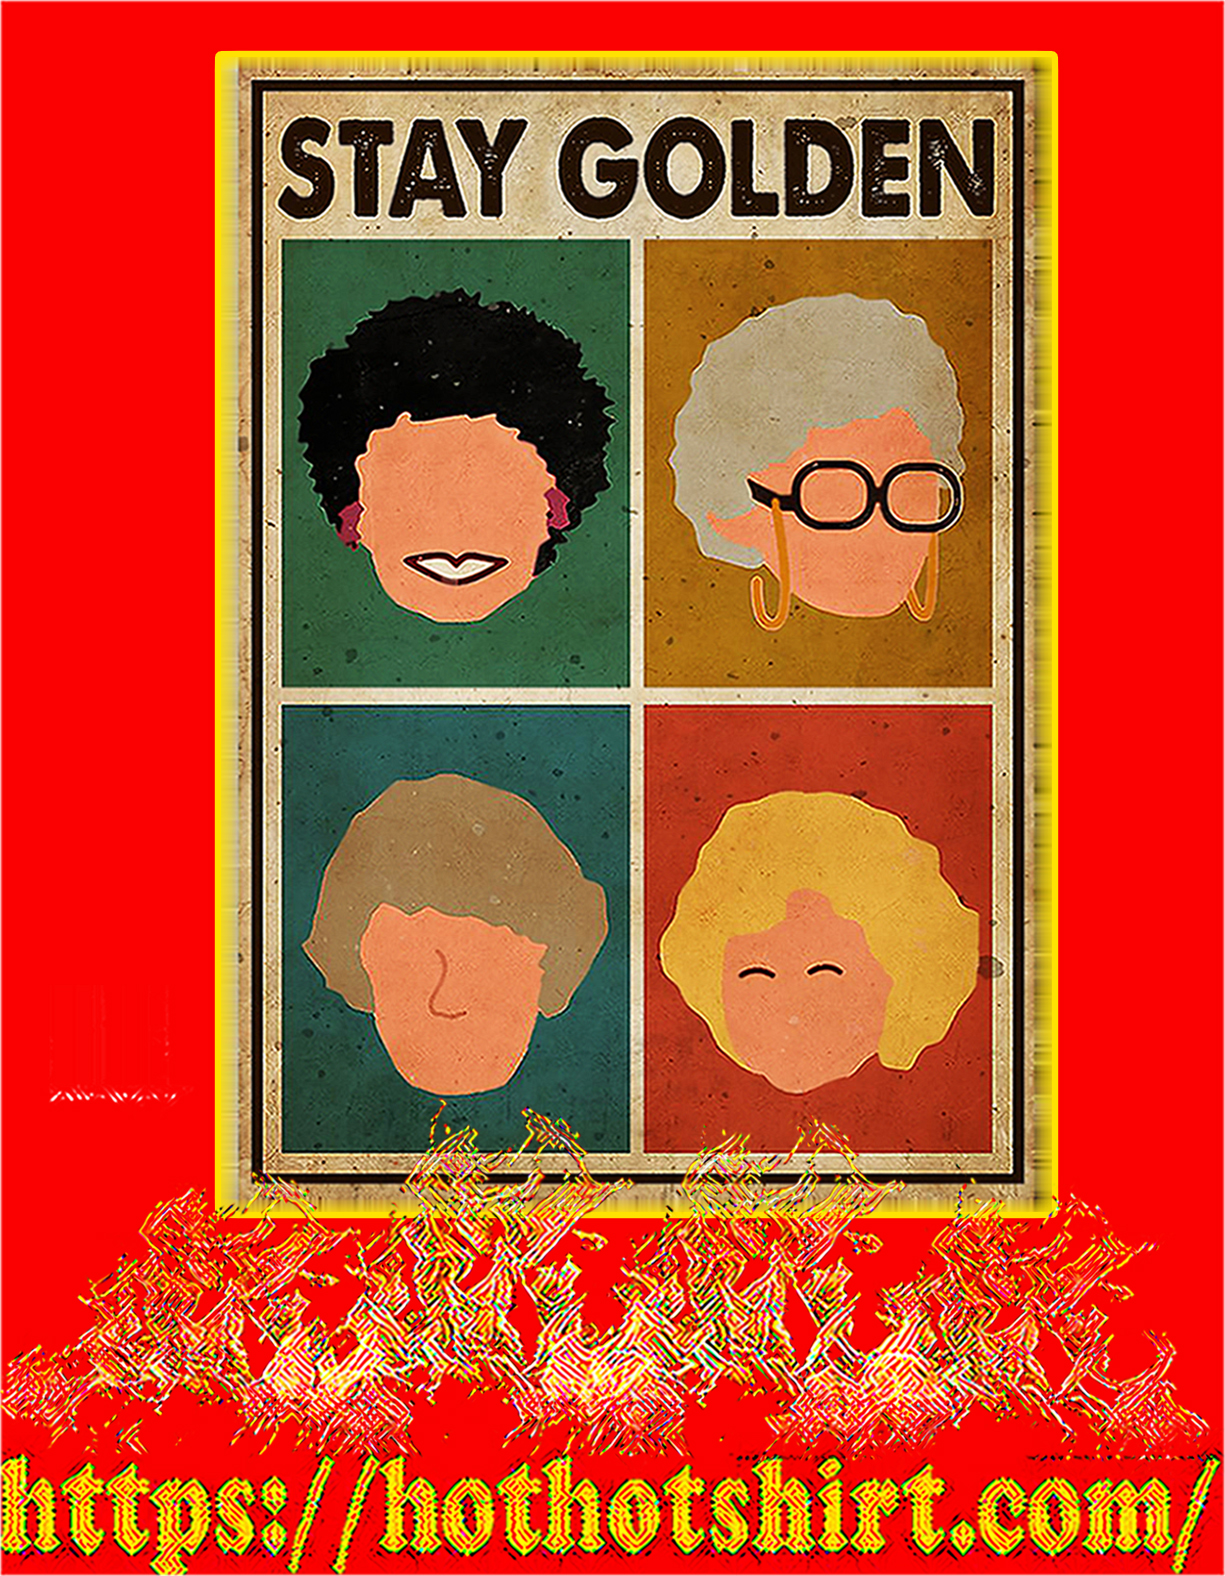 Stay golden poster - A4